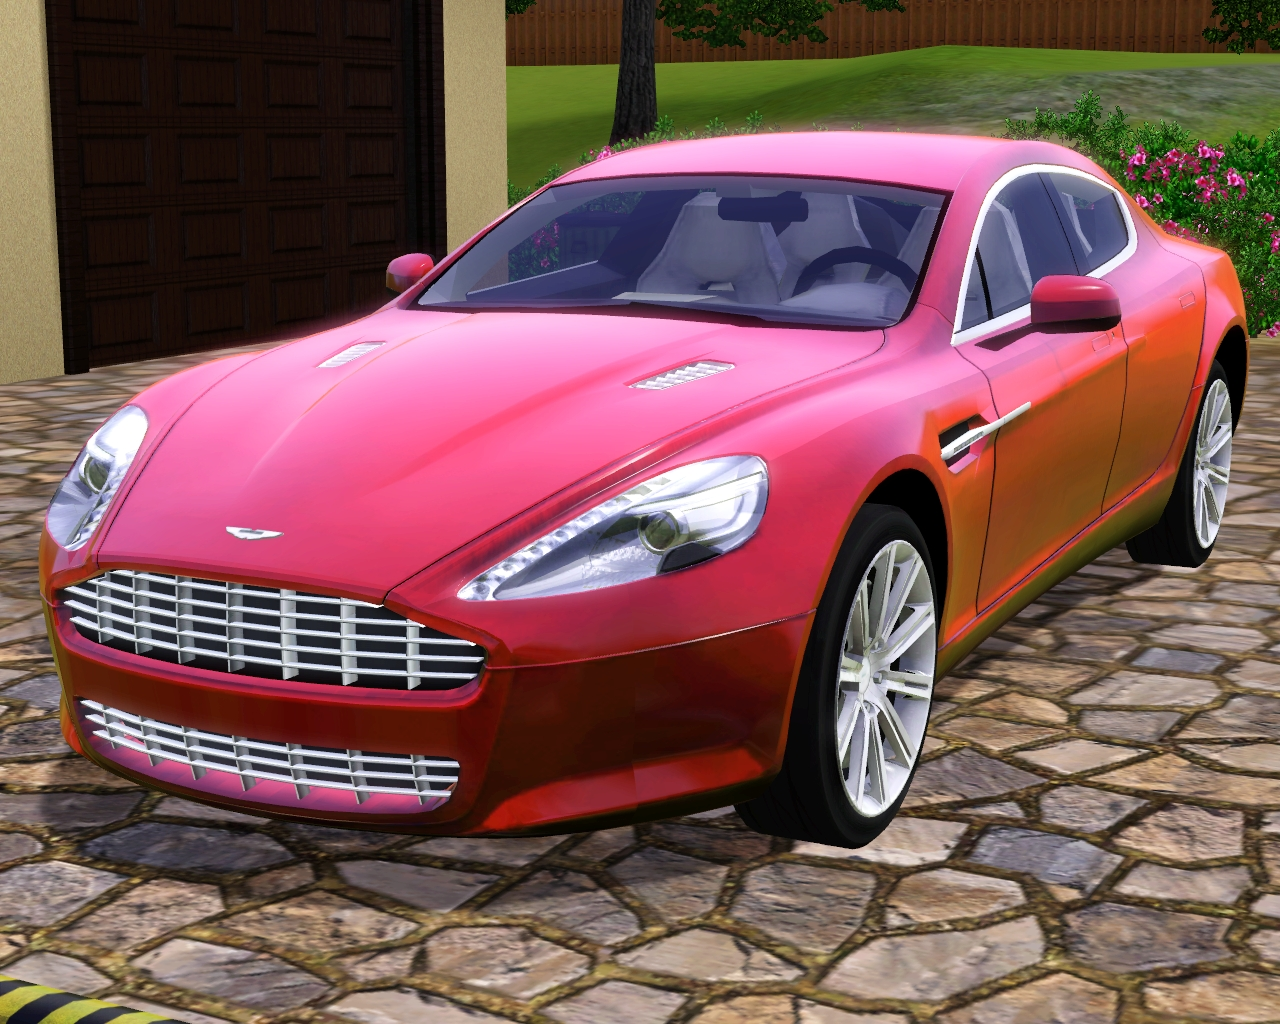 2011 Aston Martin Rapide by Fresh-Prince